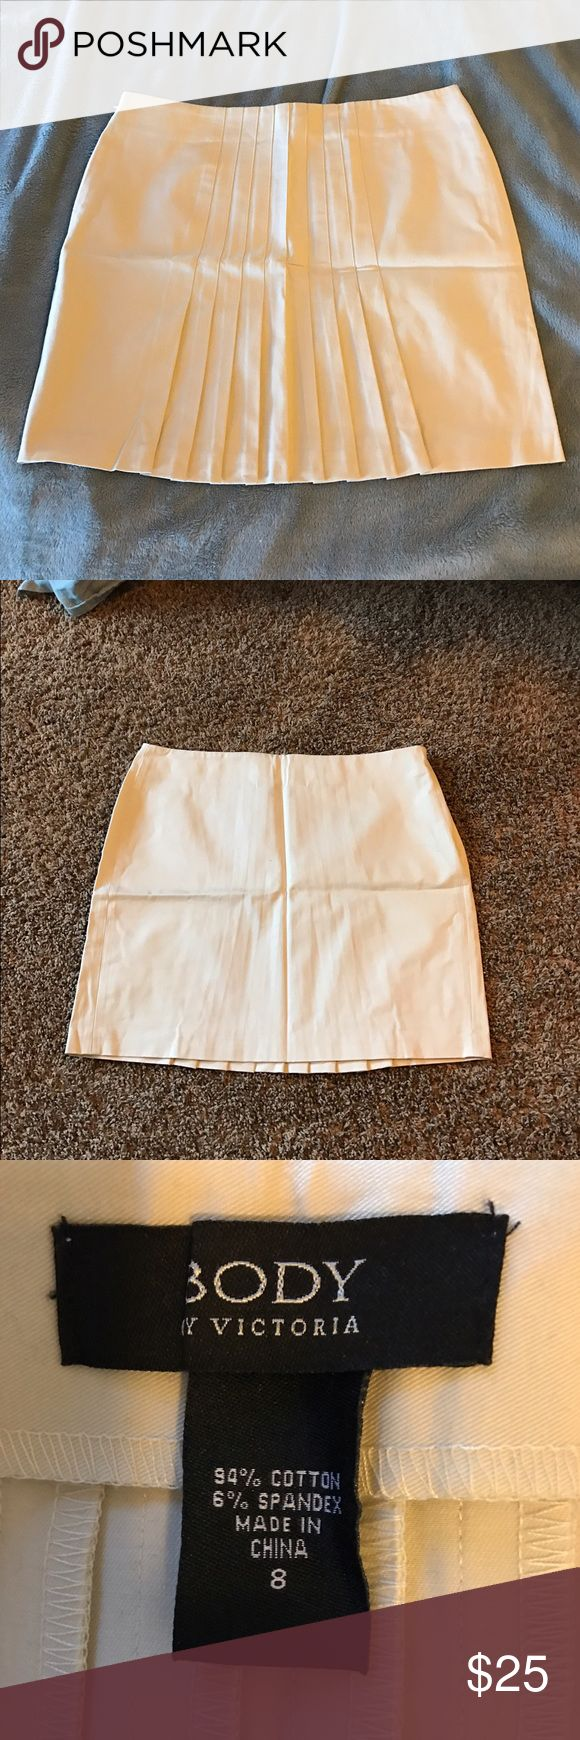 Body by Victoria skirt, size 8, light Creme color Super cute skirt, size 8, new without tag, light Creme / Ivory color, nice detailing on the back of skirt, body by Victoria secret Victoria's Secret Skirts Mini